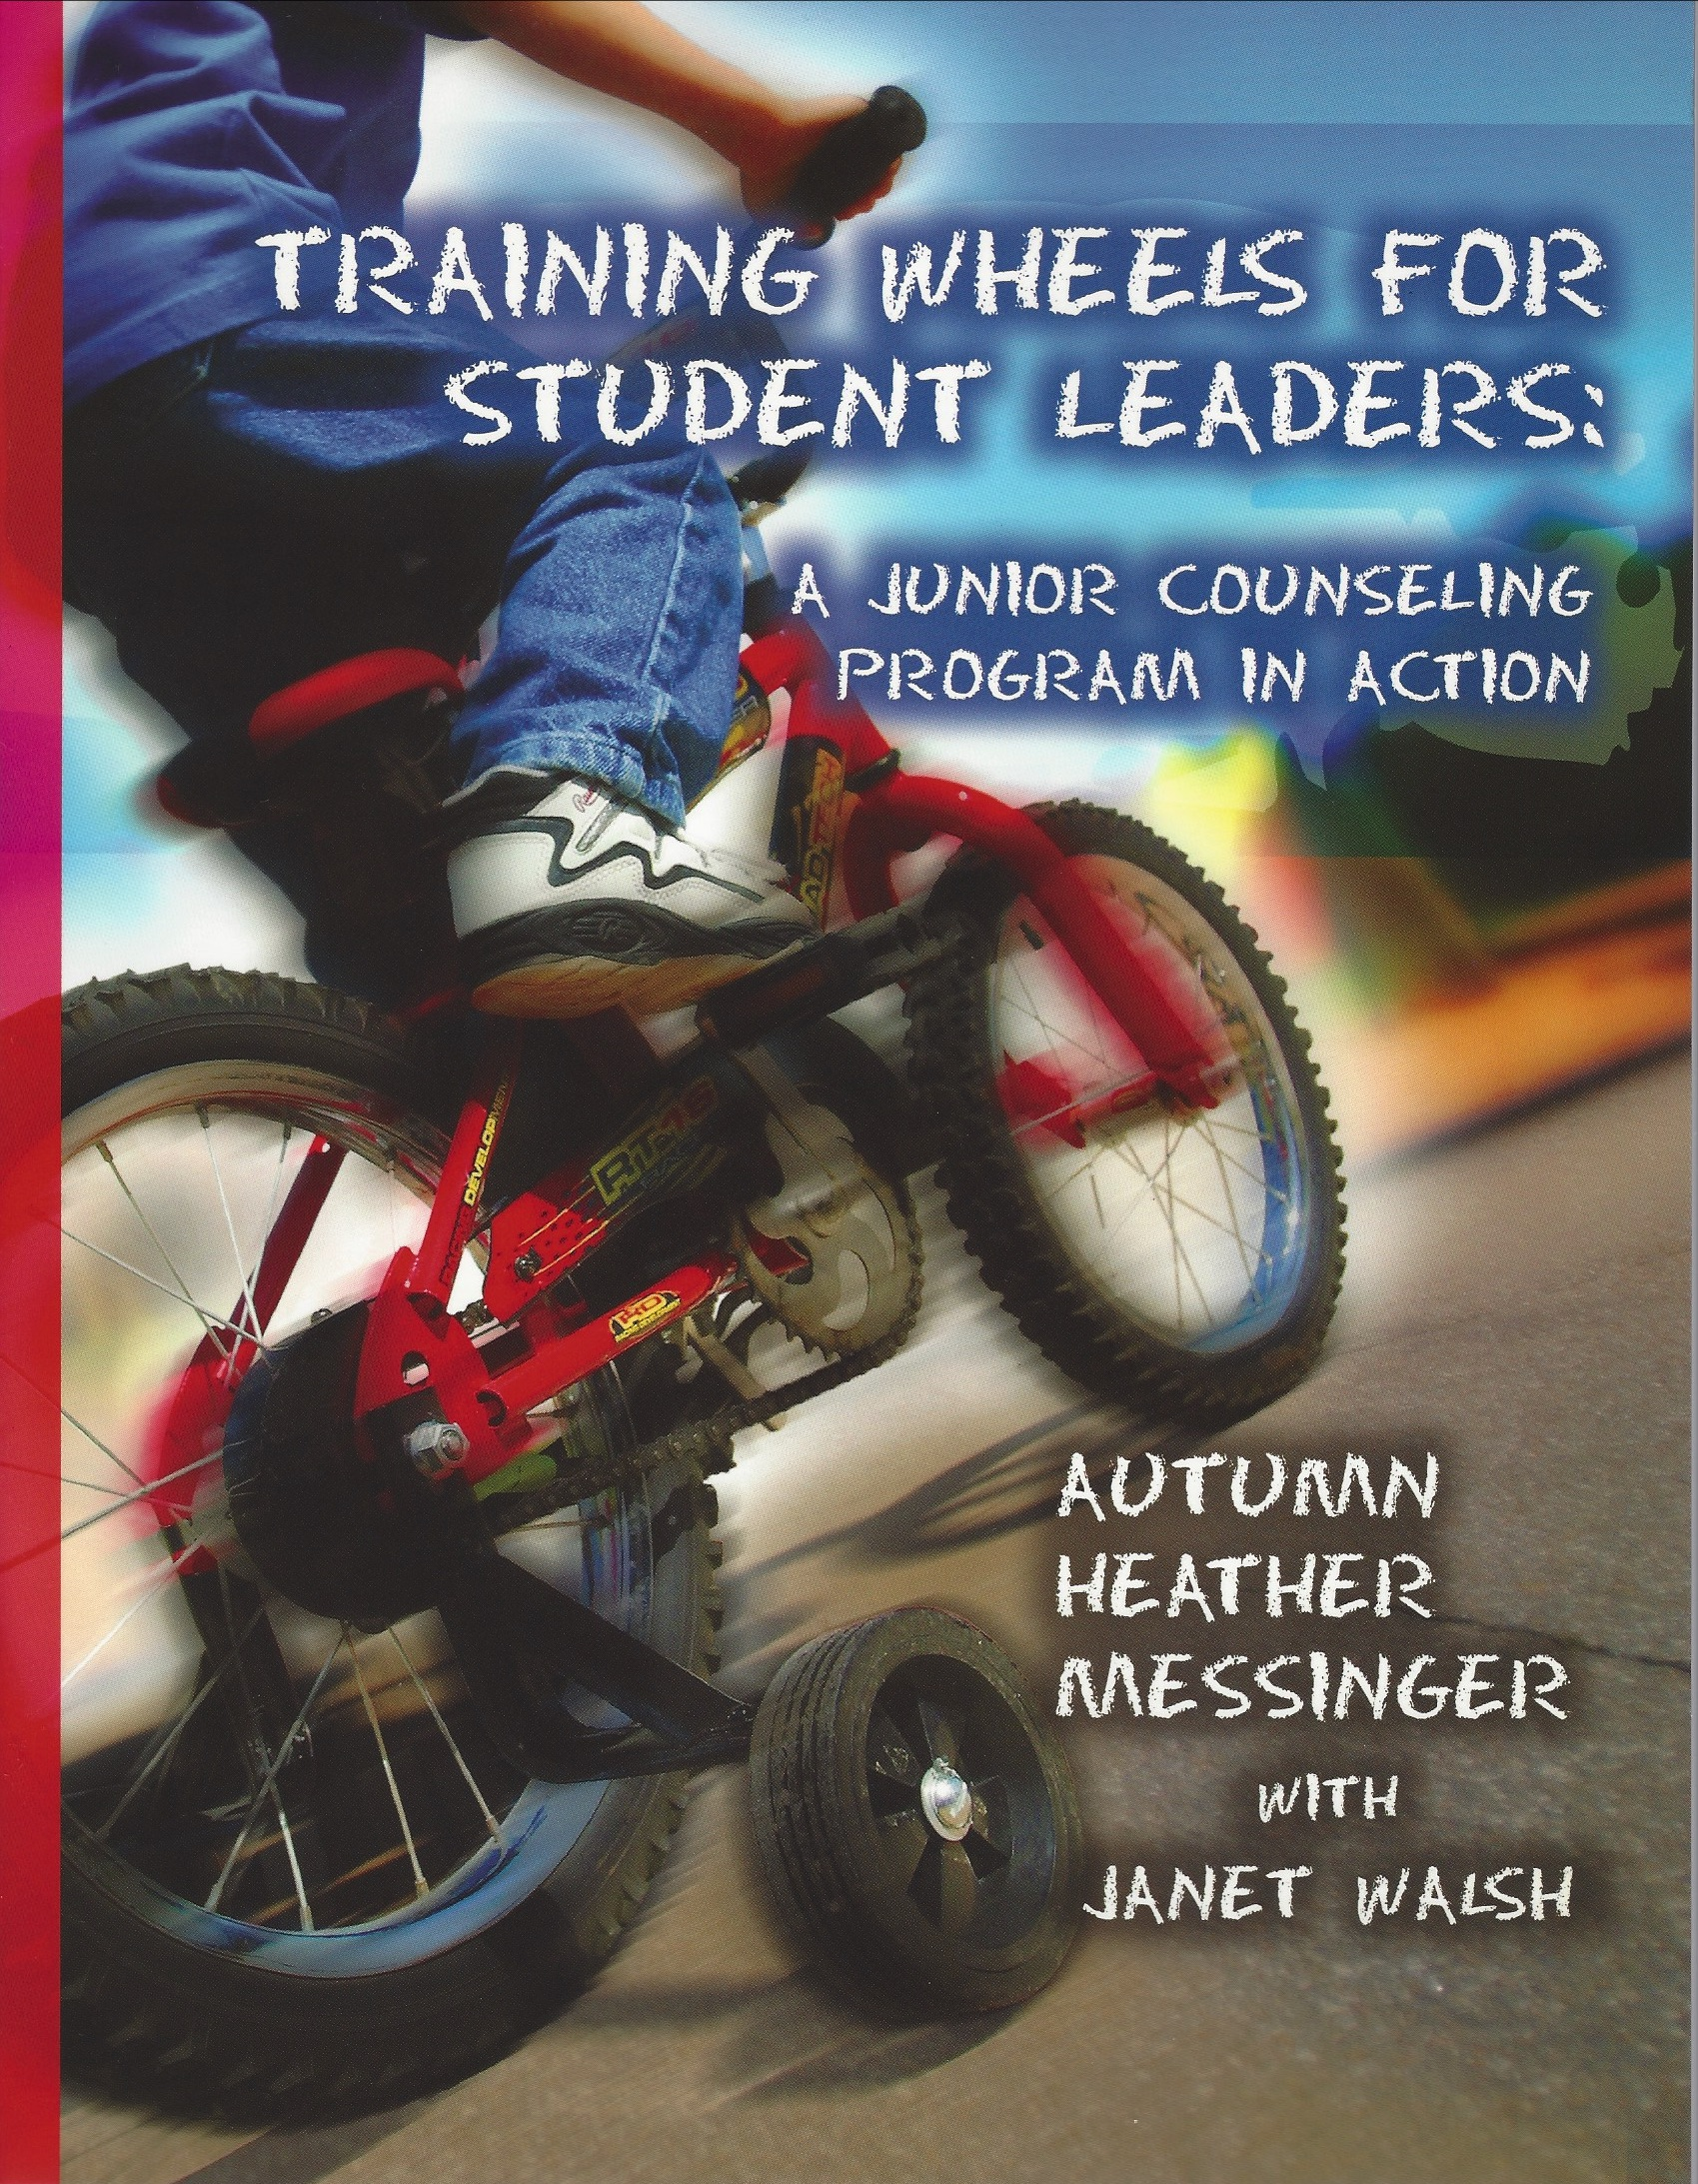 Training Wheels For Student Leaders